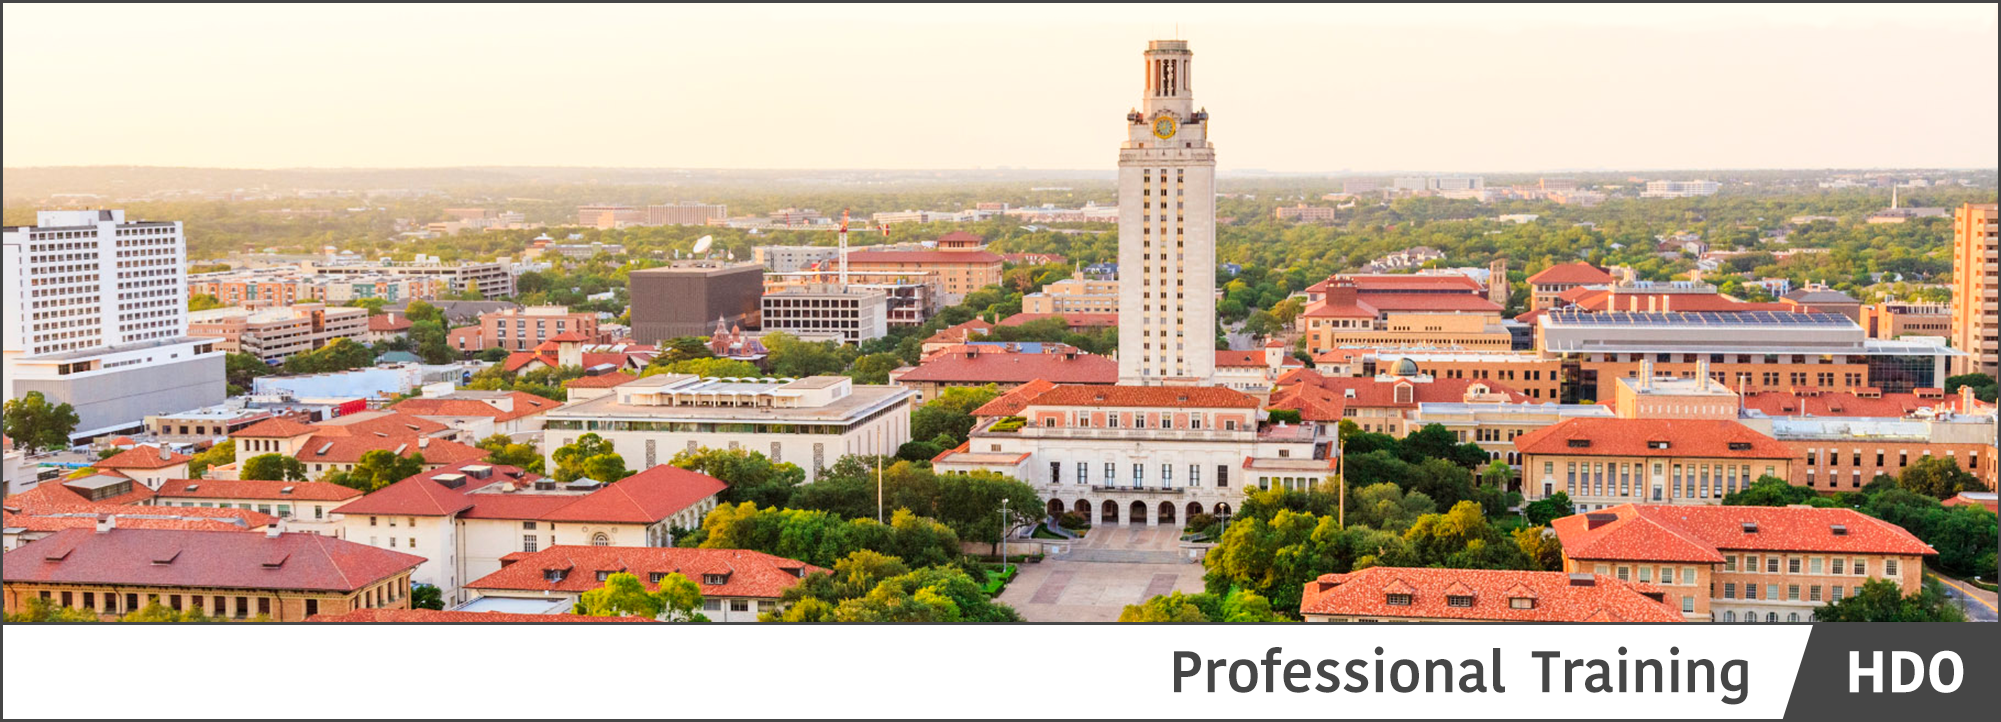 One-Day Training for Working Professionals, led by UT Austin's Top Faculty. Open enrollment courses at The University of Texas at Austin. Professional development and executive education classes and workshops at The University of Texas at Austin.